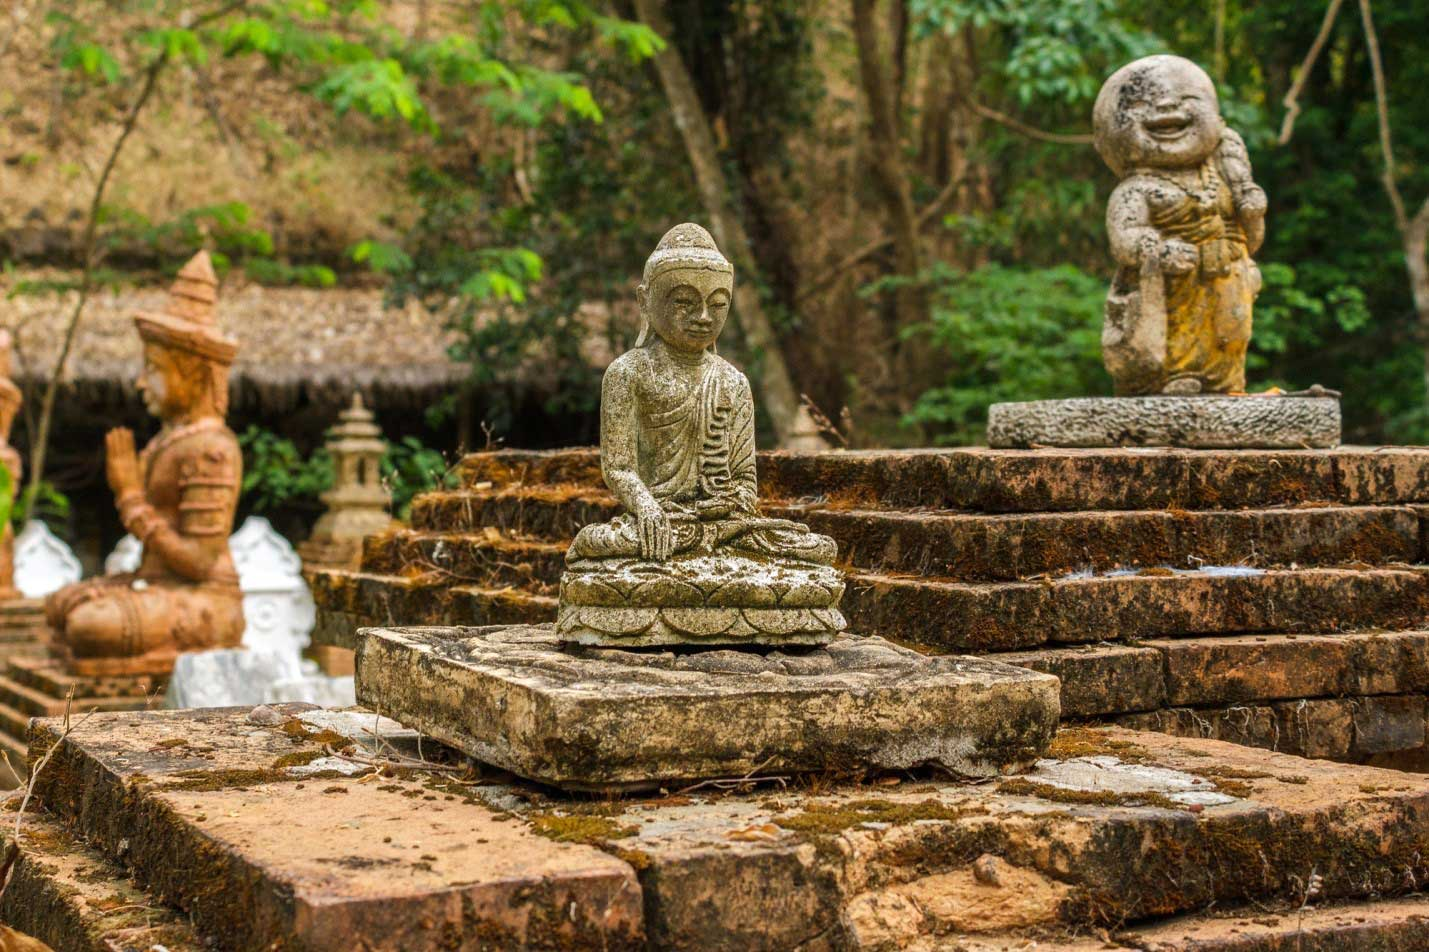 What to see in Chiang Mai